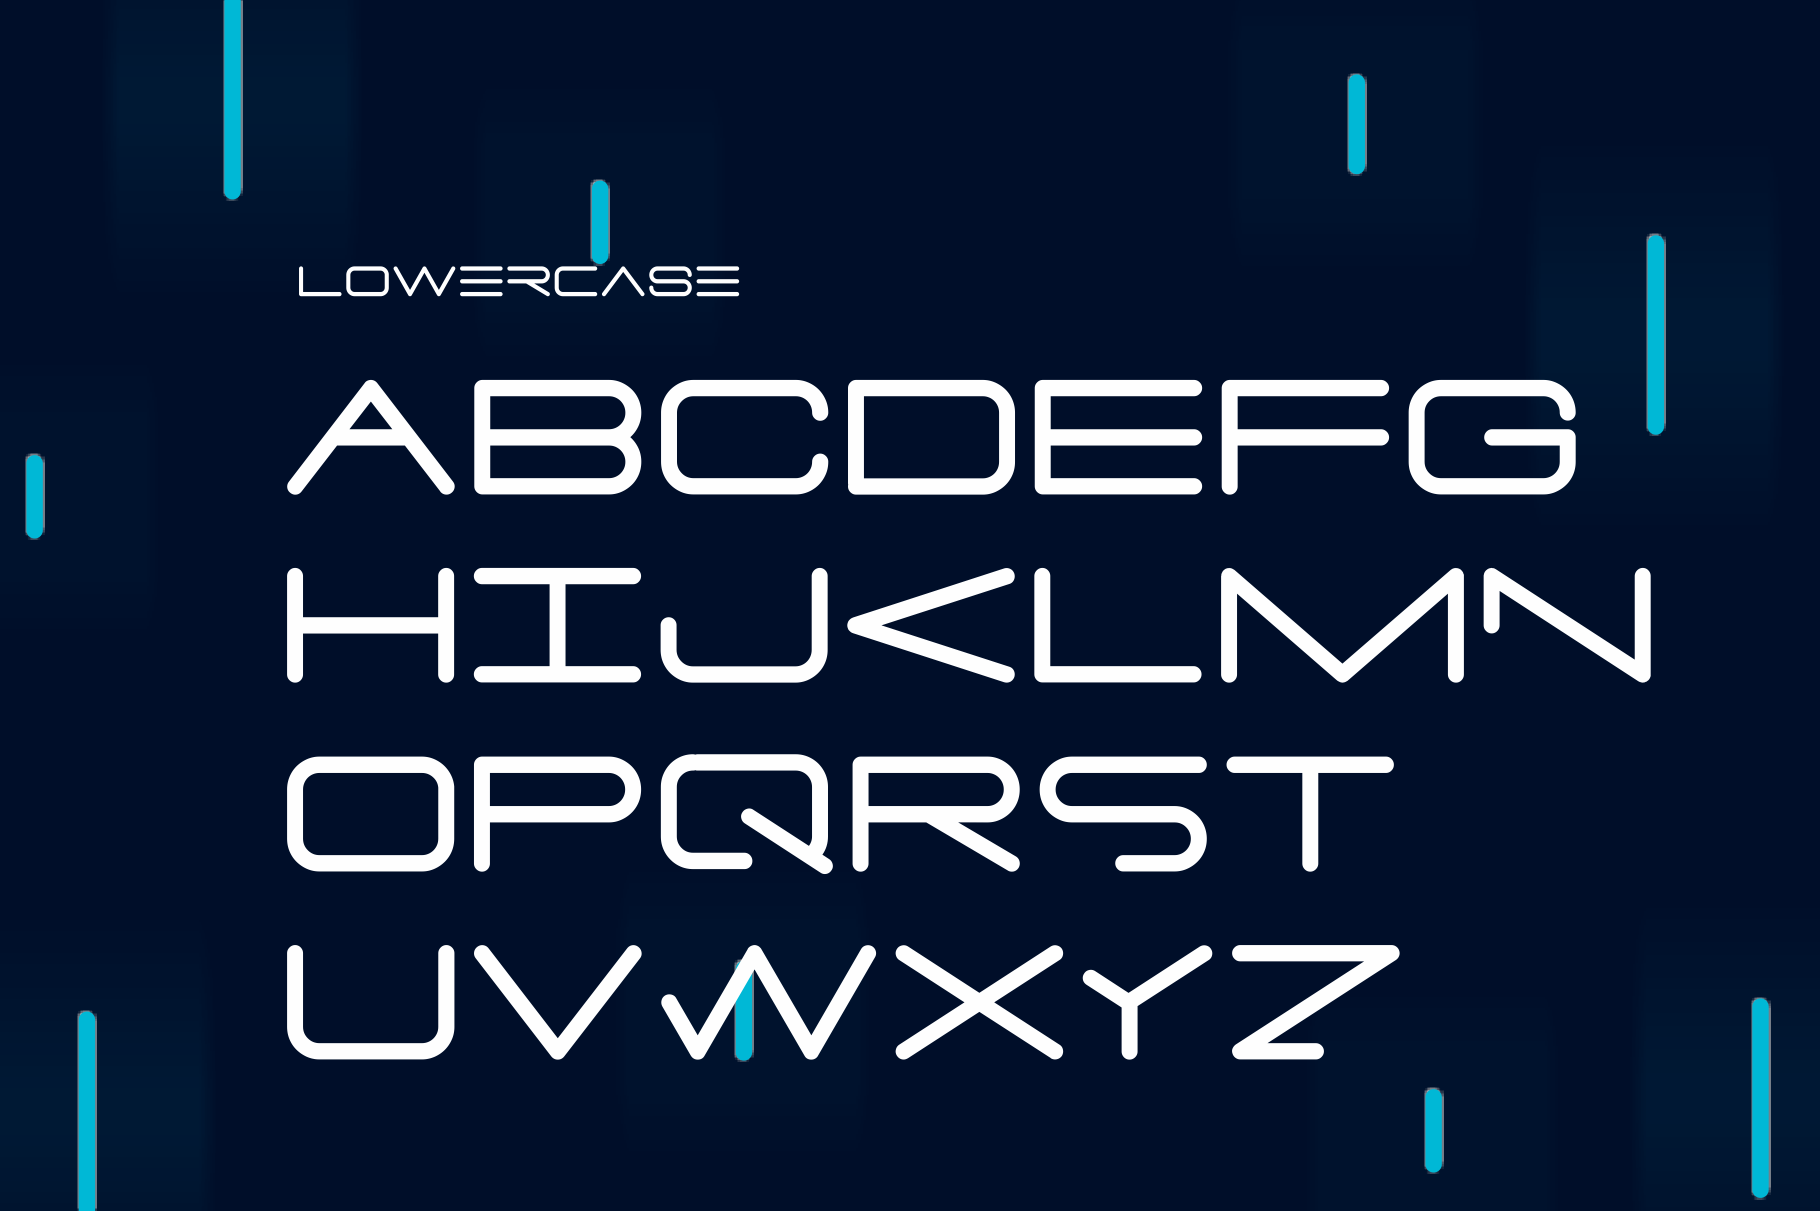 PORE Font example image 6